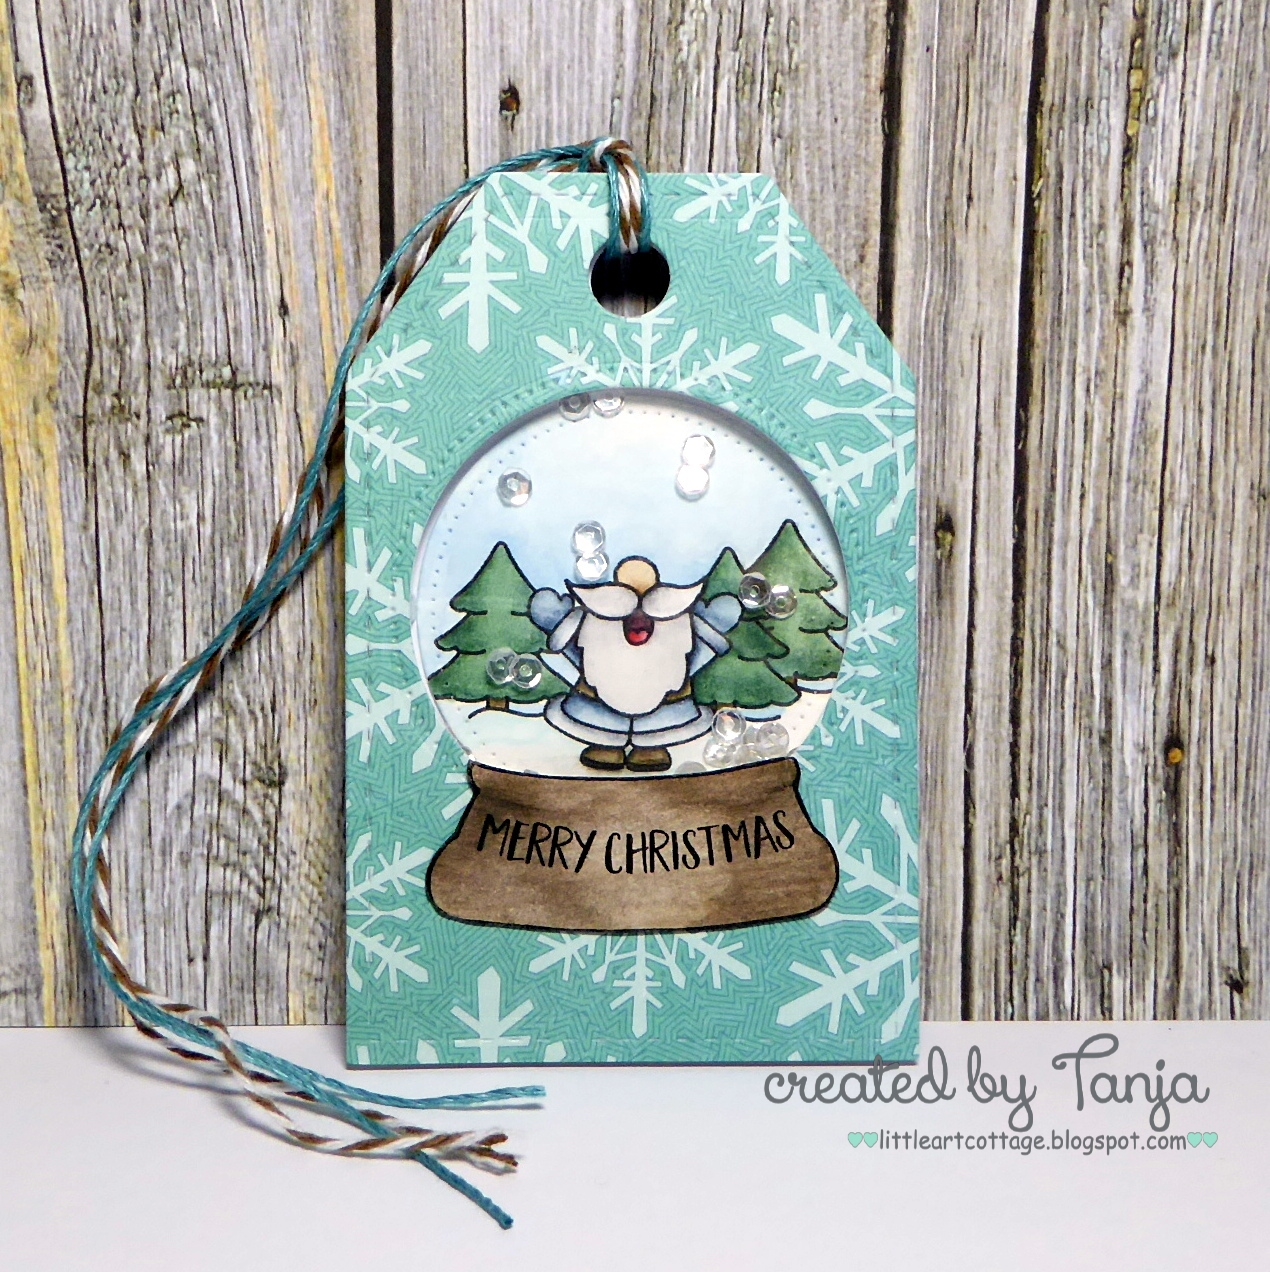 Color The Sweet Gerda Steiner Designs Snowglobe Image Available As Part Of November December Digital Stamp Bundle With Derwent Inktense Pencils And A